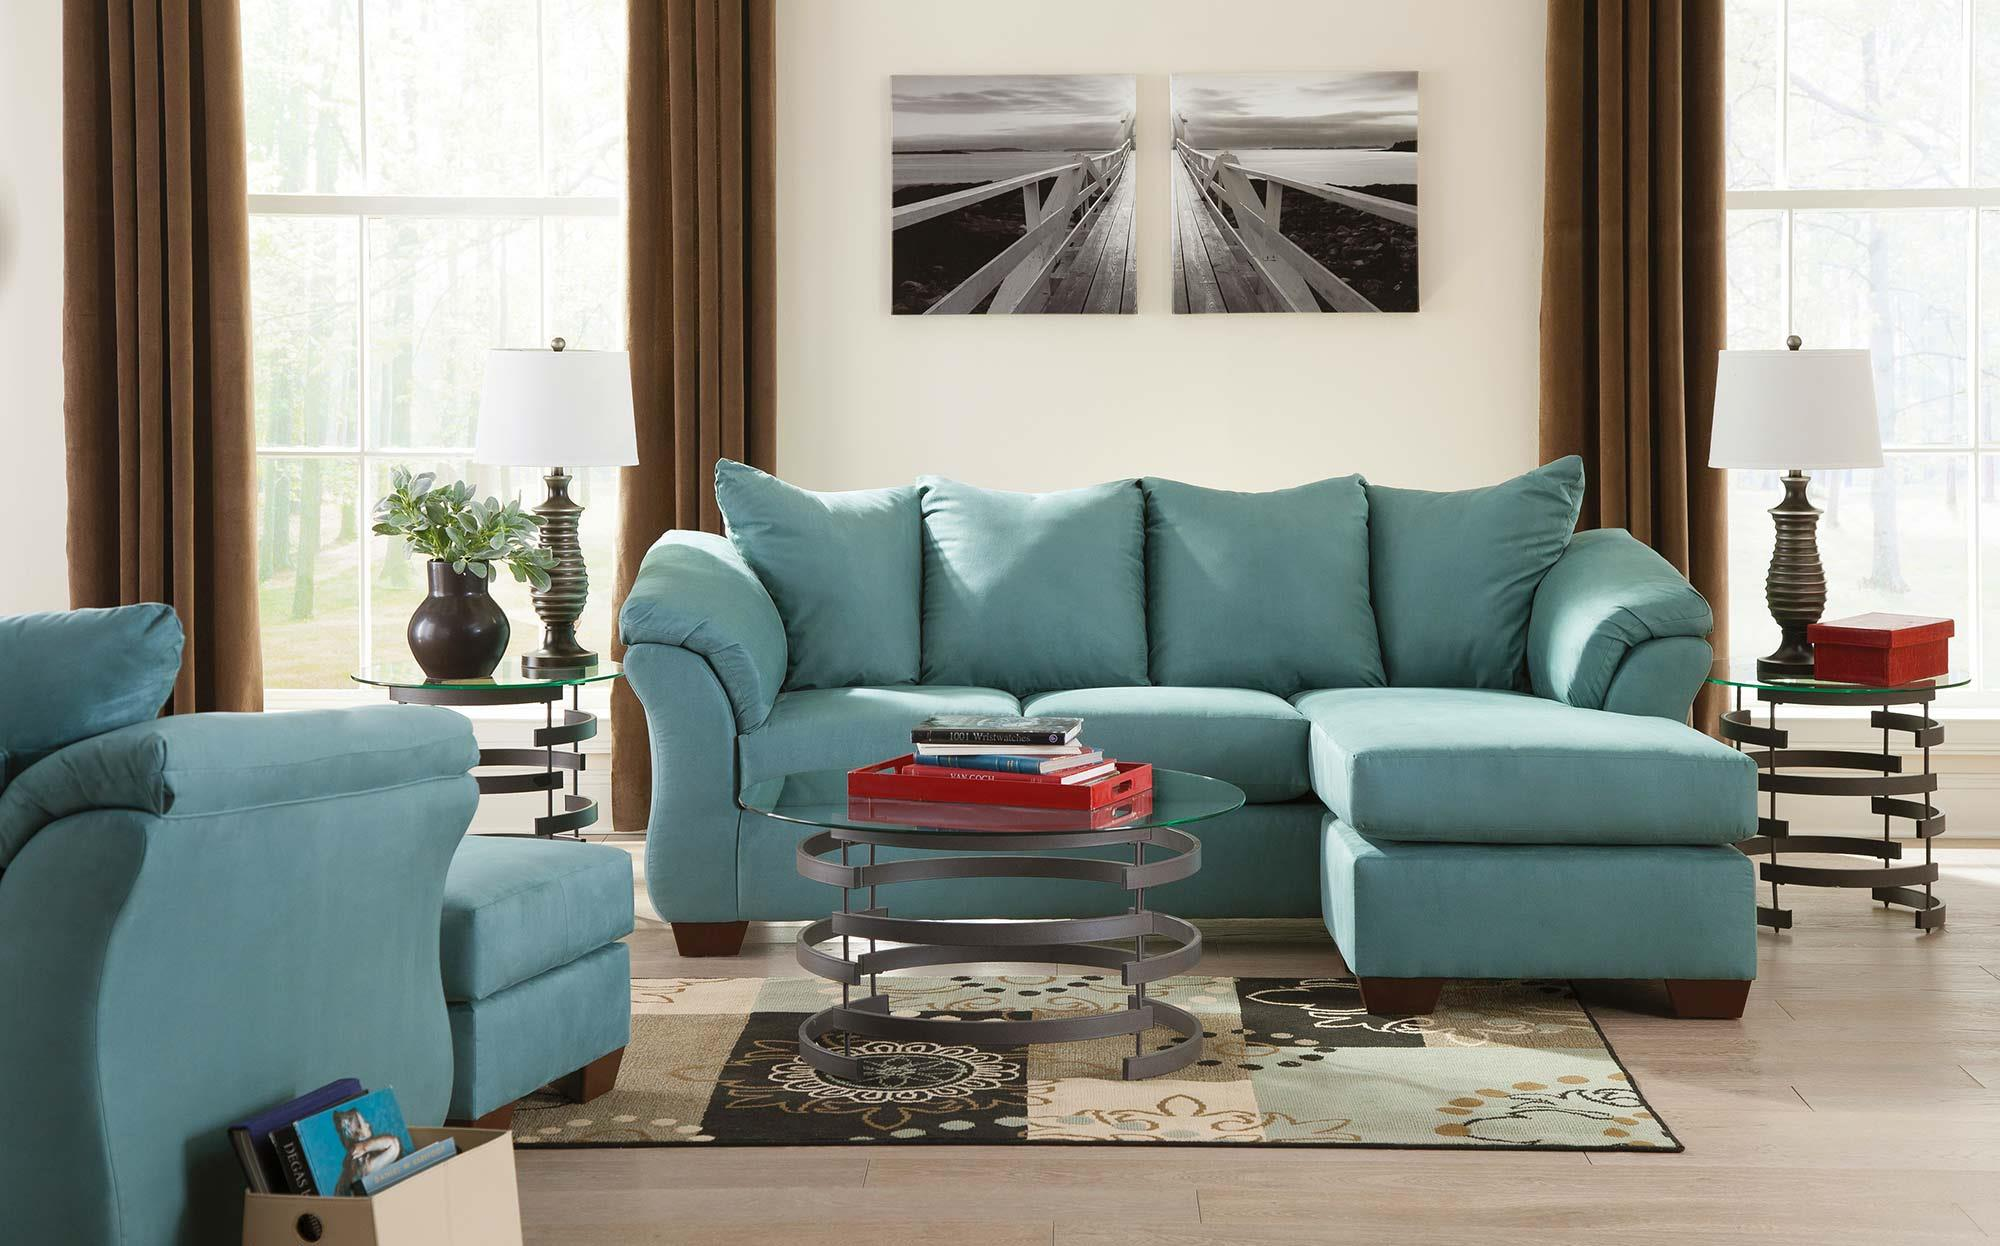 Signature Design by Ashley Vista - Sky 5-Piece Living Room Package - Item Number: 7500618+20+T408-13